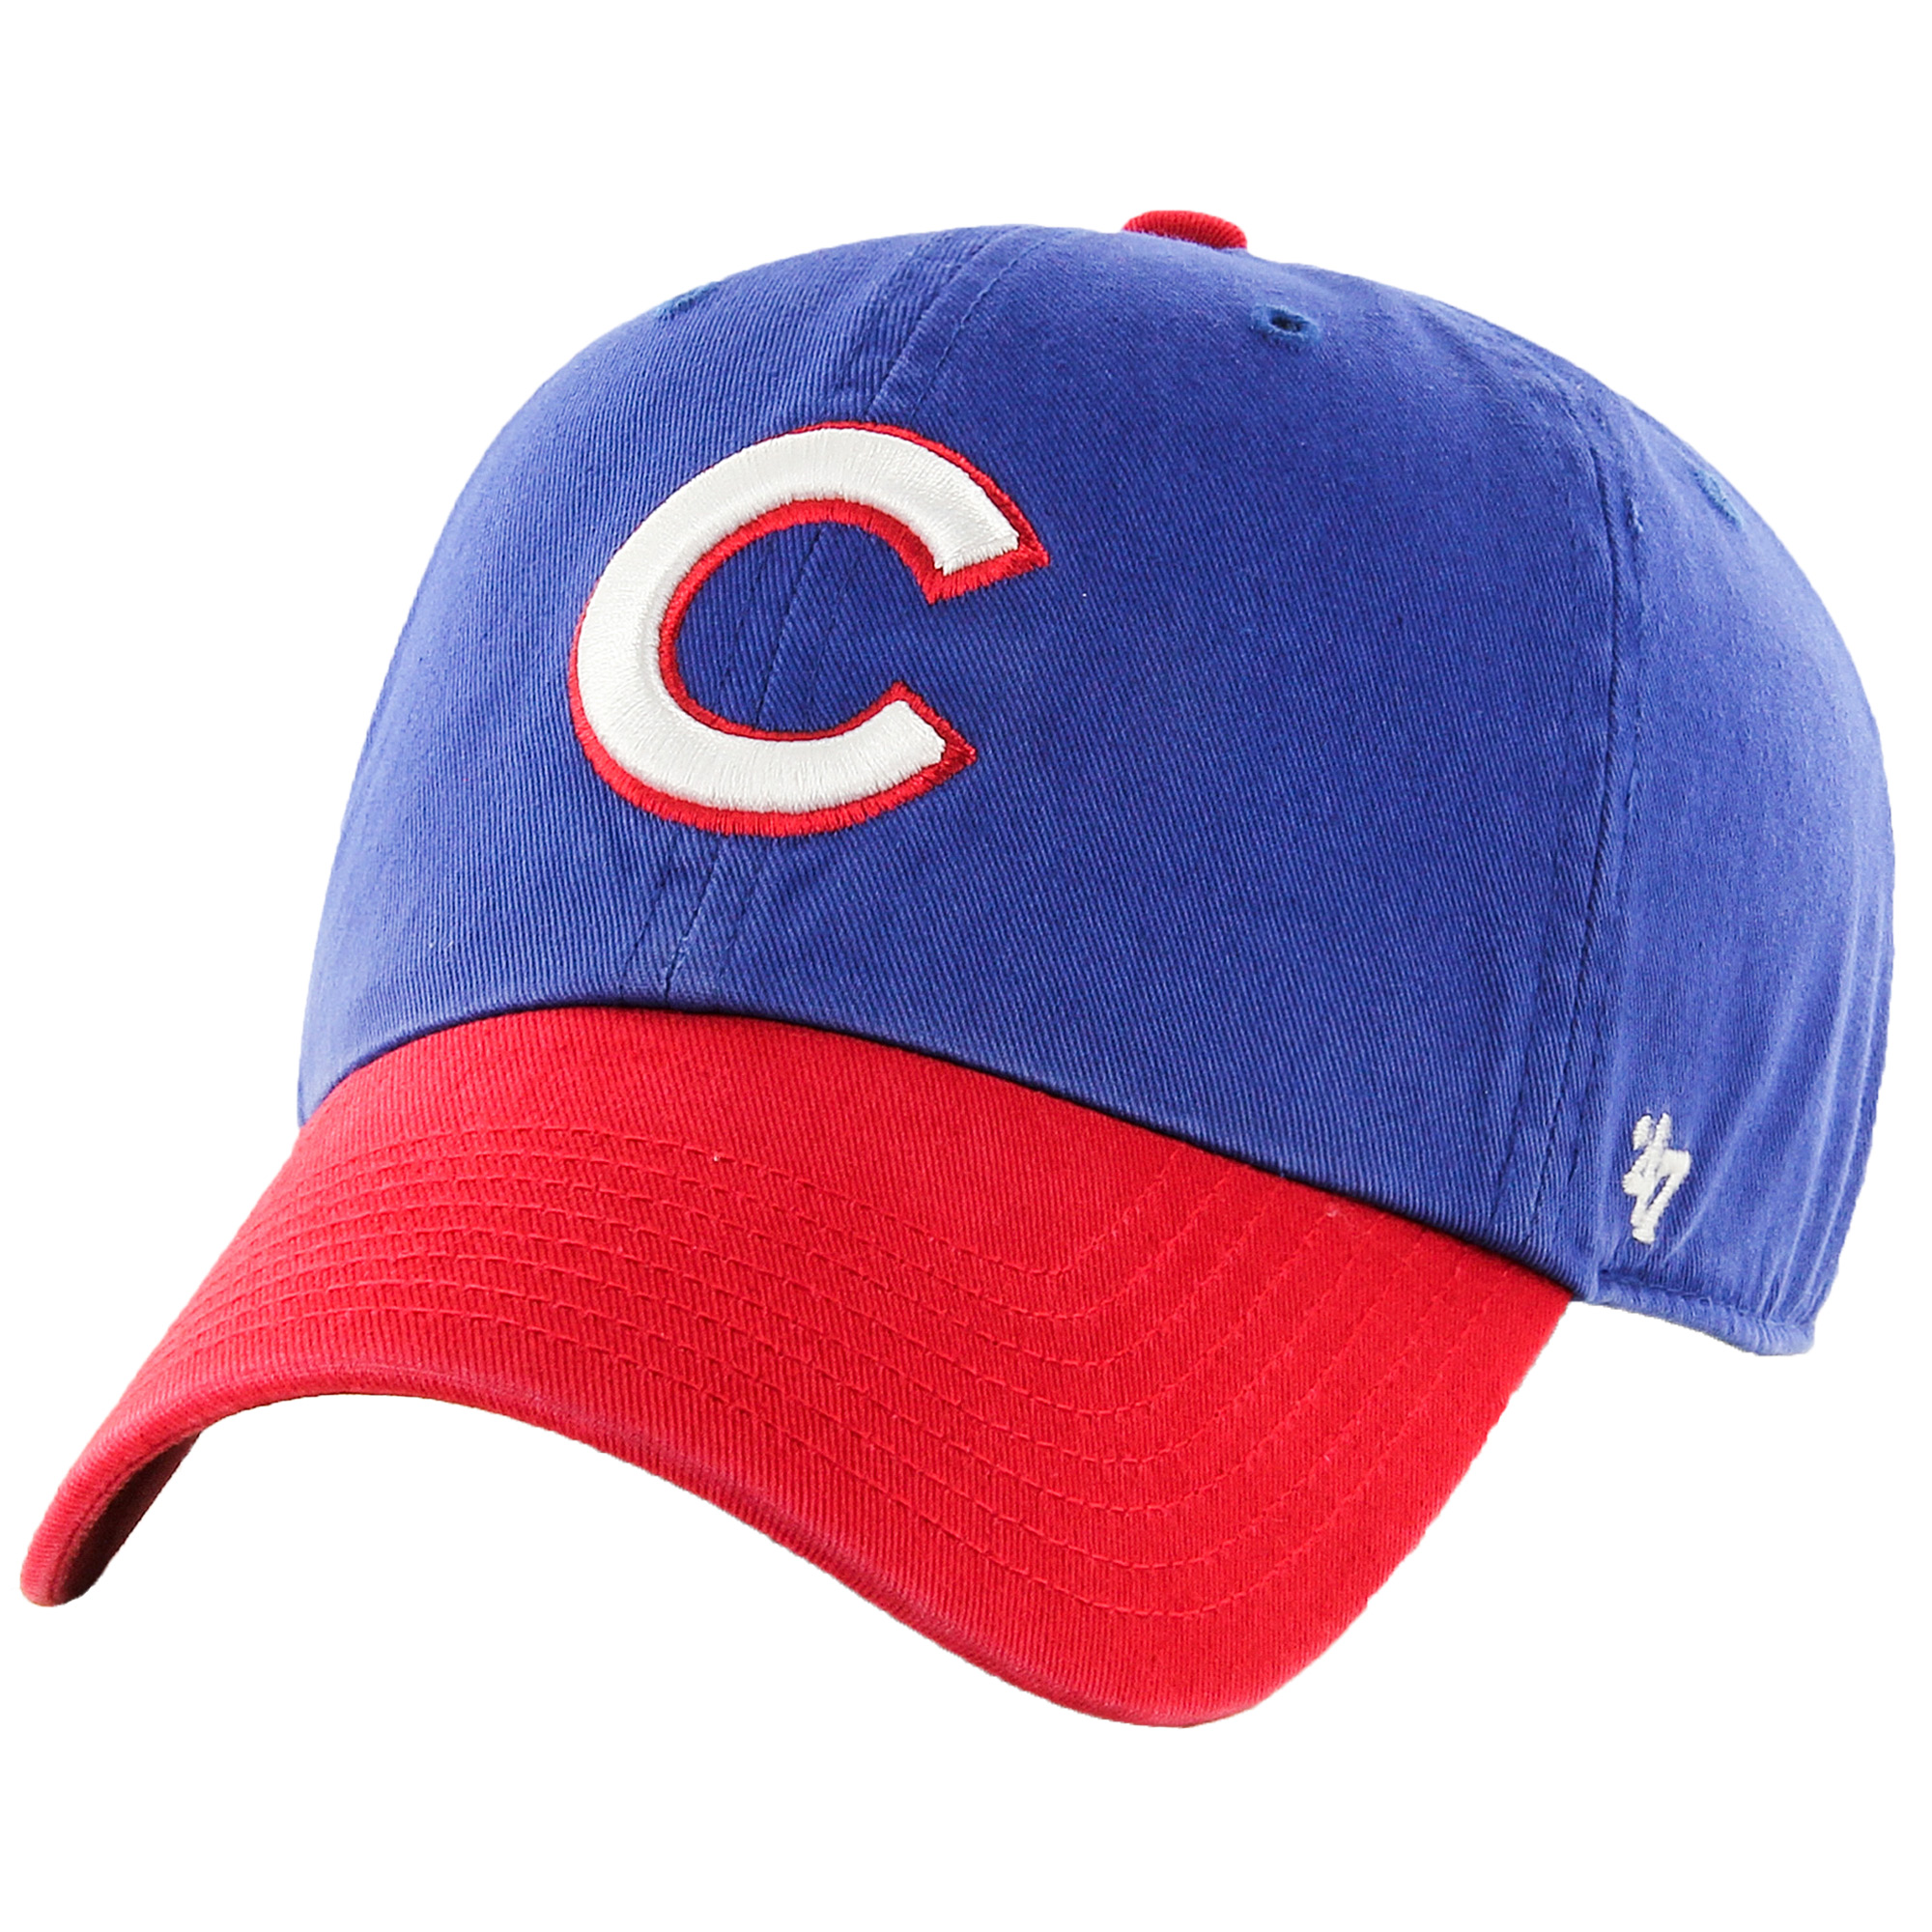 Chicago Cubs '47 Clean Up Batting Practice Adjustable Hat - Royal/Red - OSFA